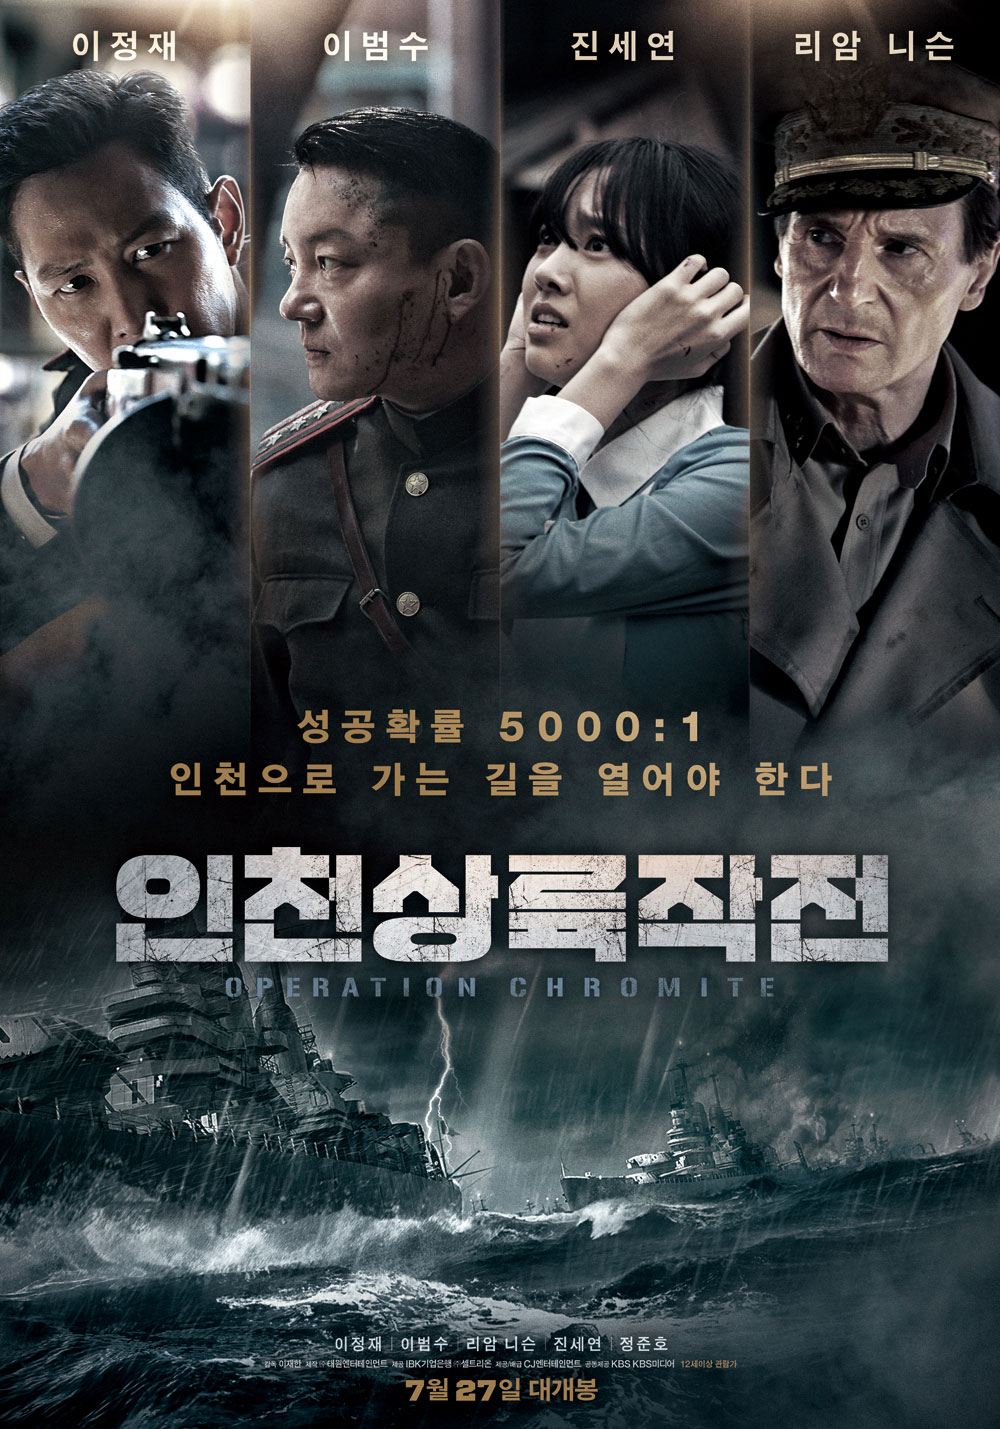 Battle for Incheon: Operation Chromite (2016) - IMDb